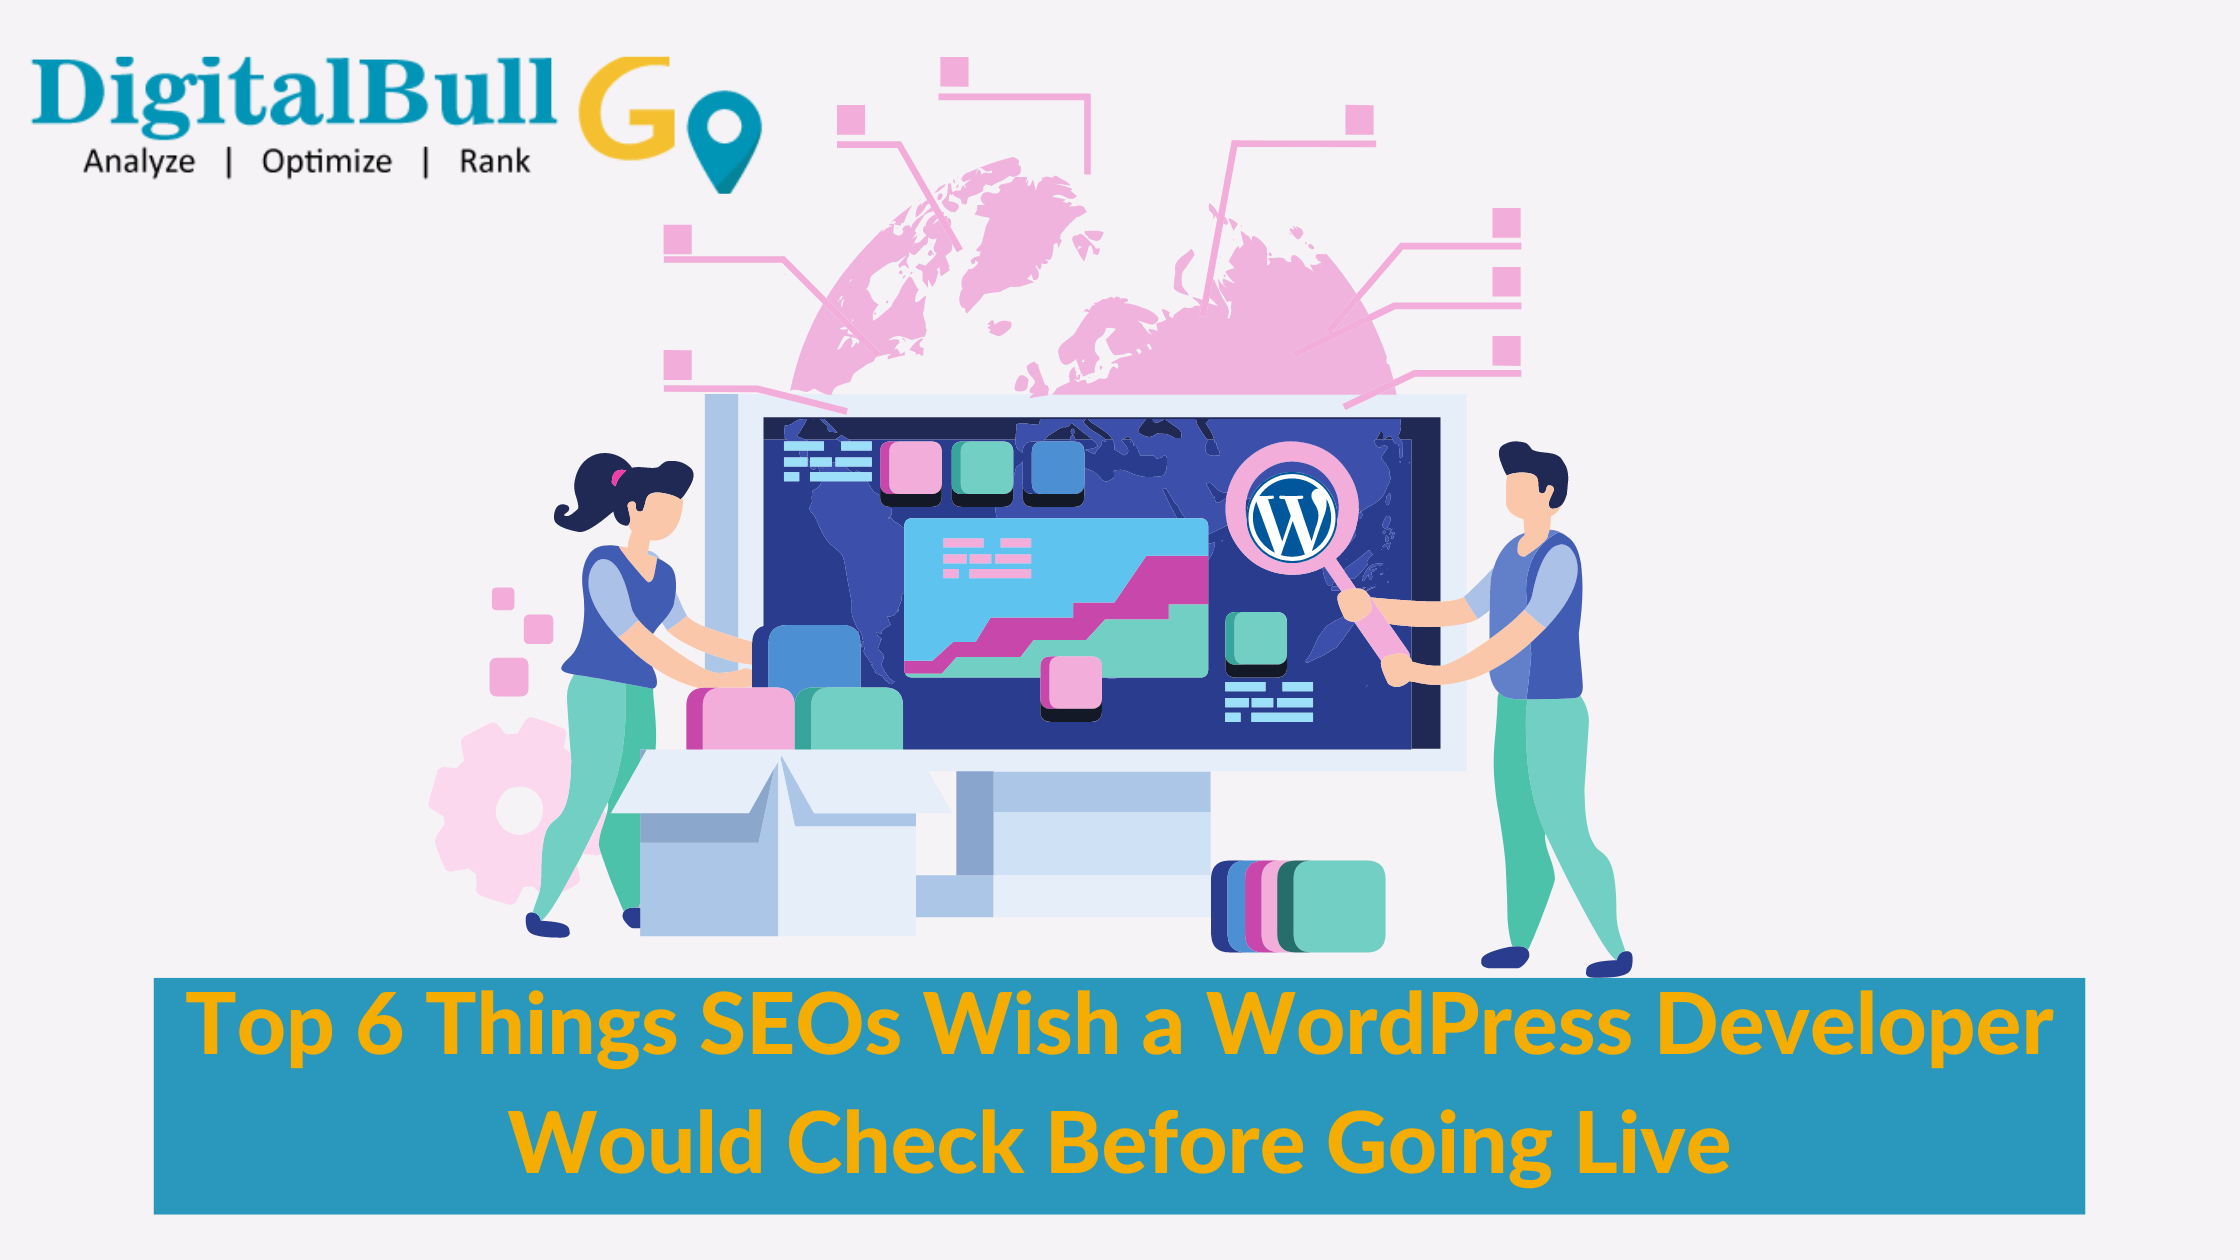 DigitalBull GO Top 6 Things SEOs Wish a WordPress Developer Would Check Before Going Live 14